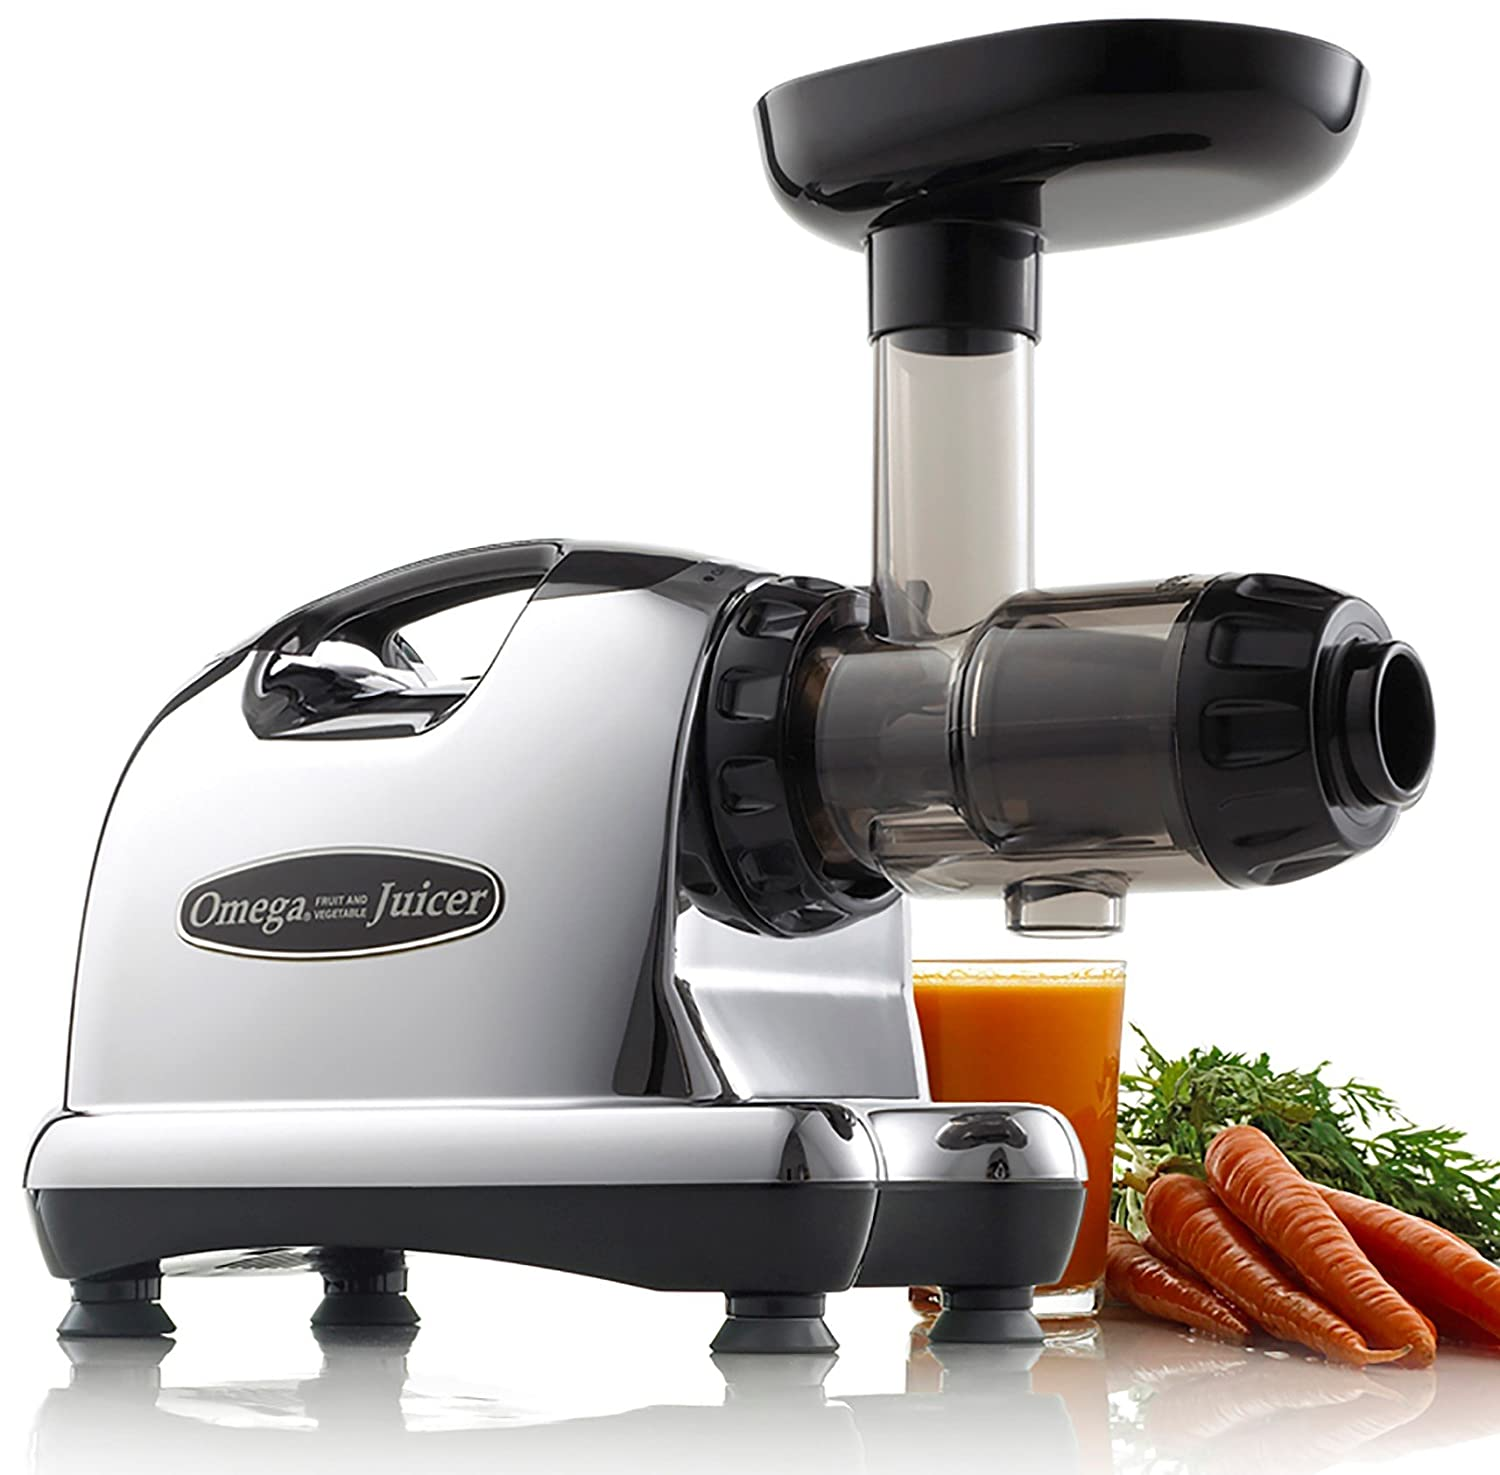 Omega J8006 Masticating Juicer Black Friday Deals 2021